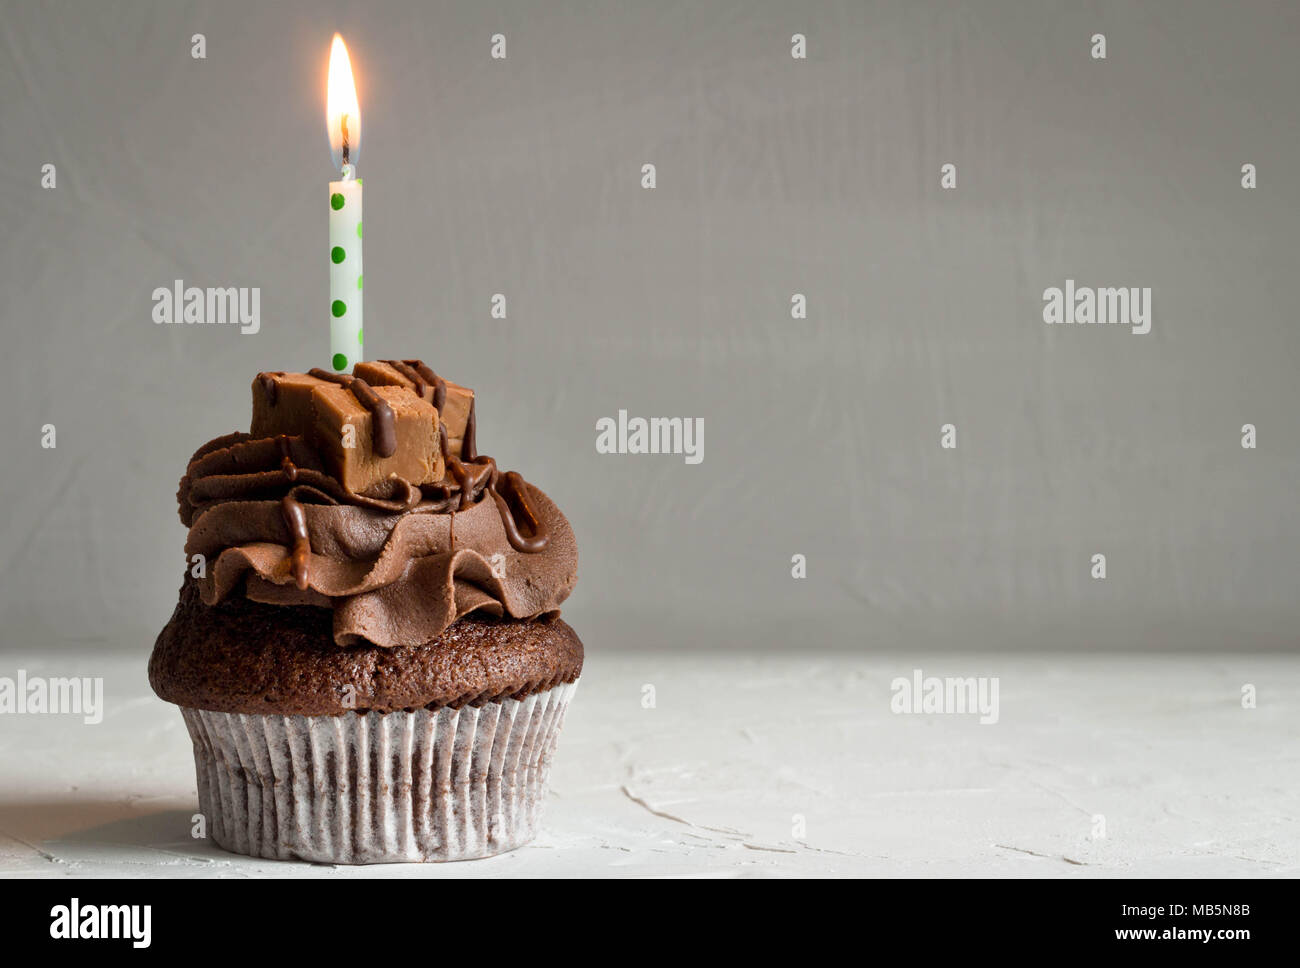 Chocolate Birthday Cake Candles Celebration Calories Stock Photos